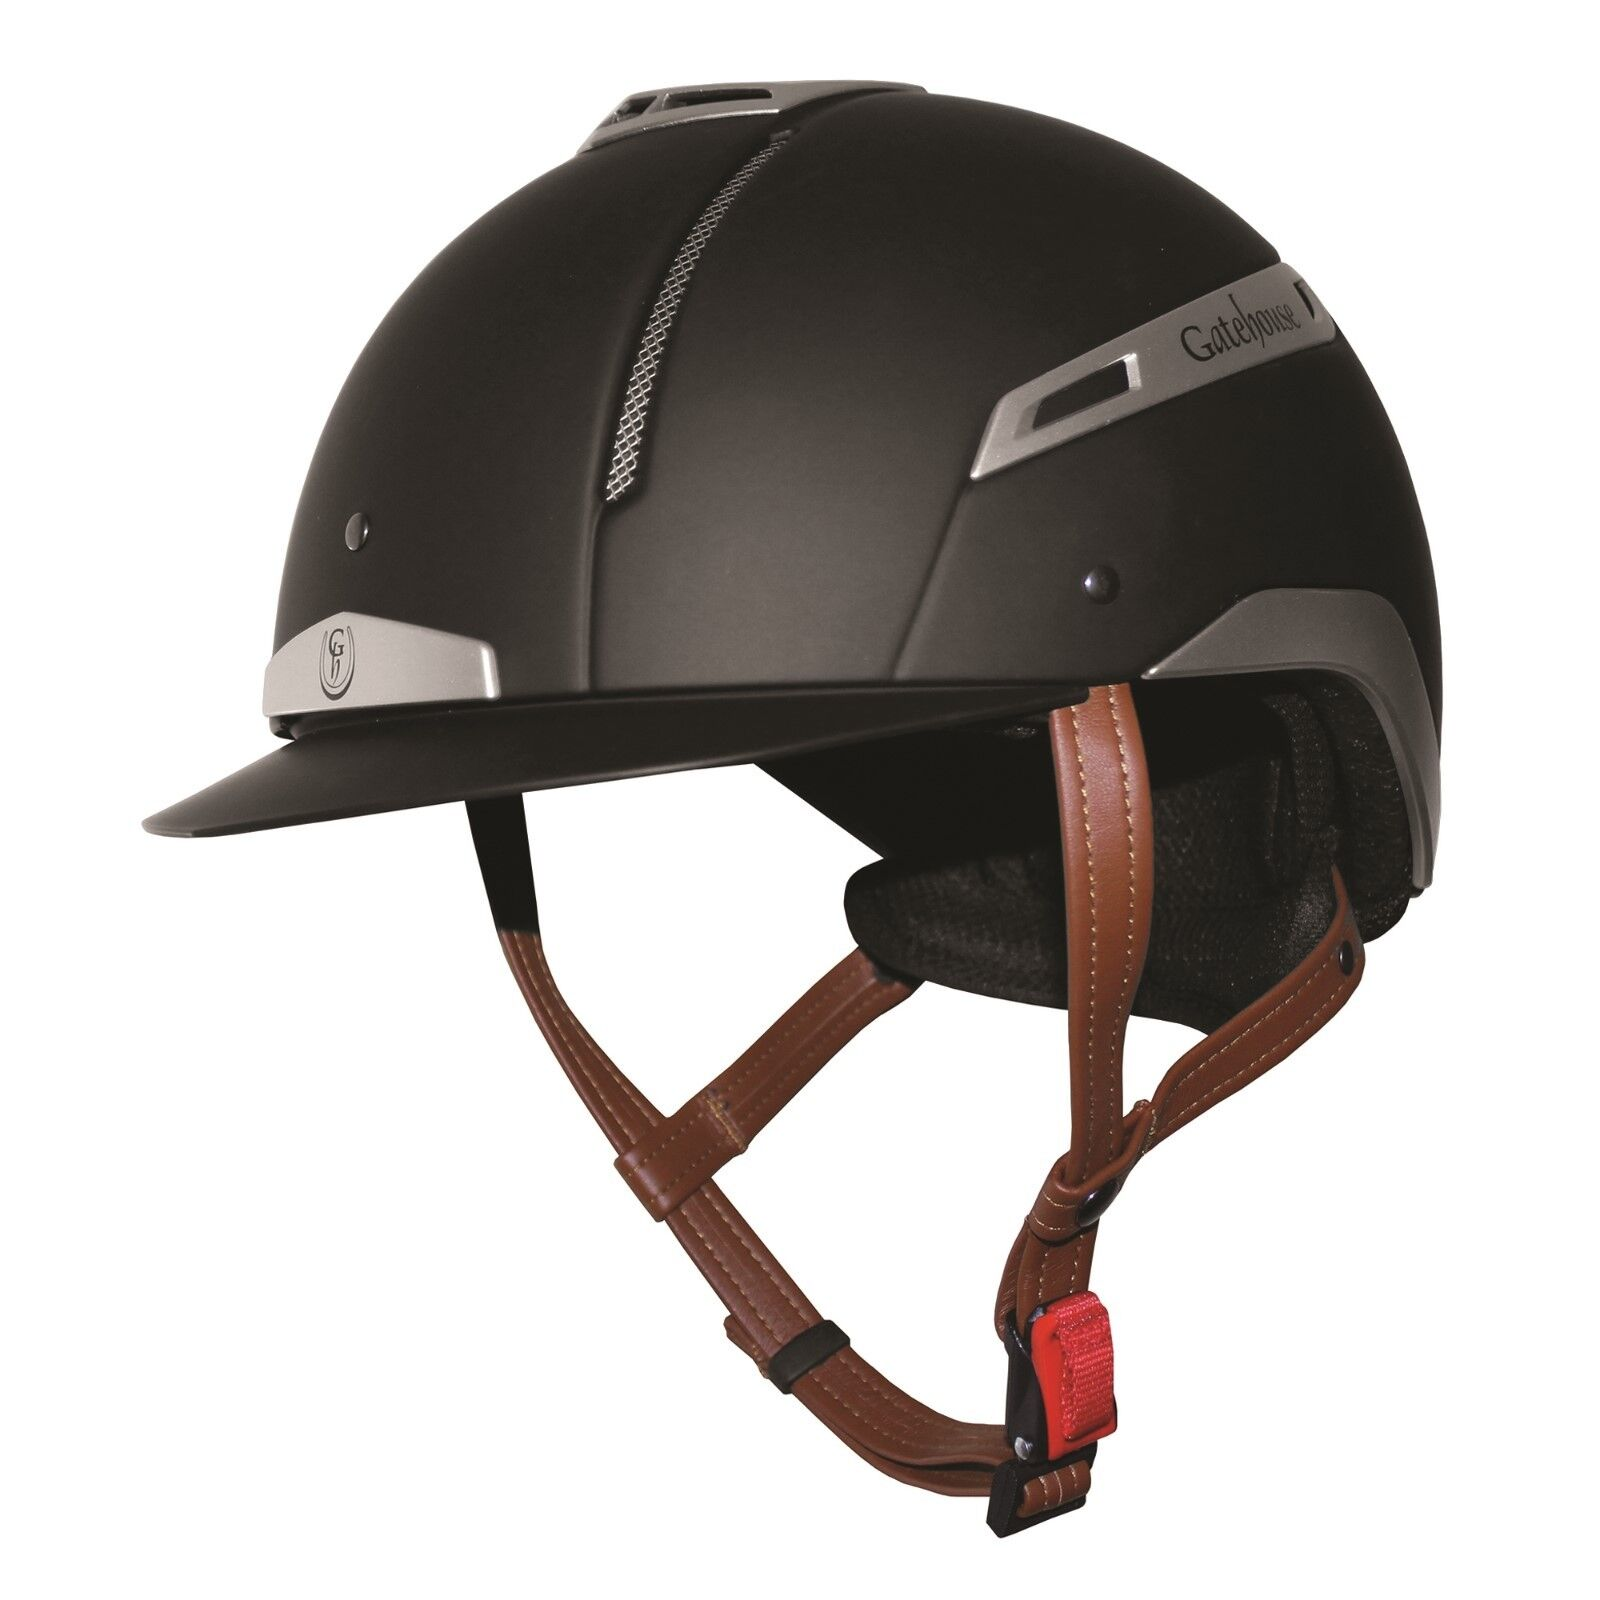 Gatehouse Volare Riding Hat Vented PAS 015 Standard NEW